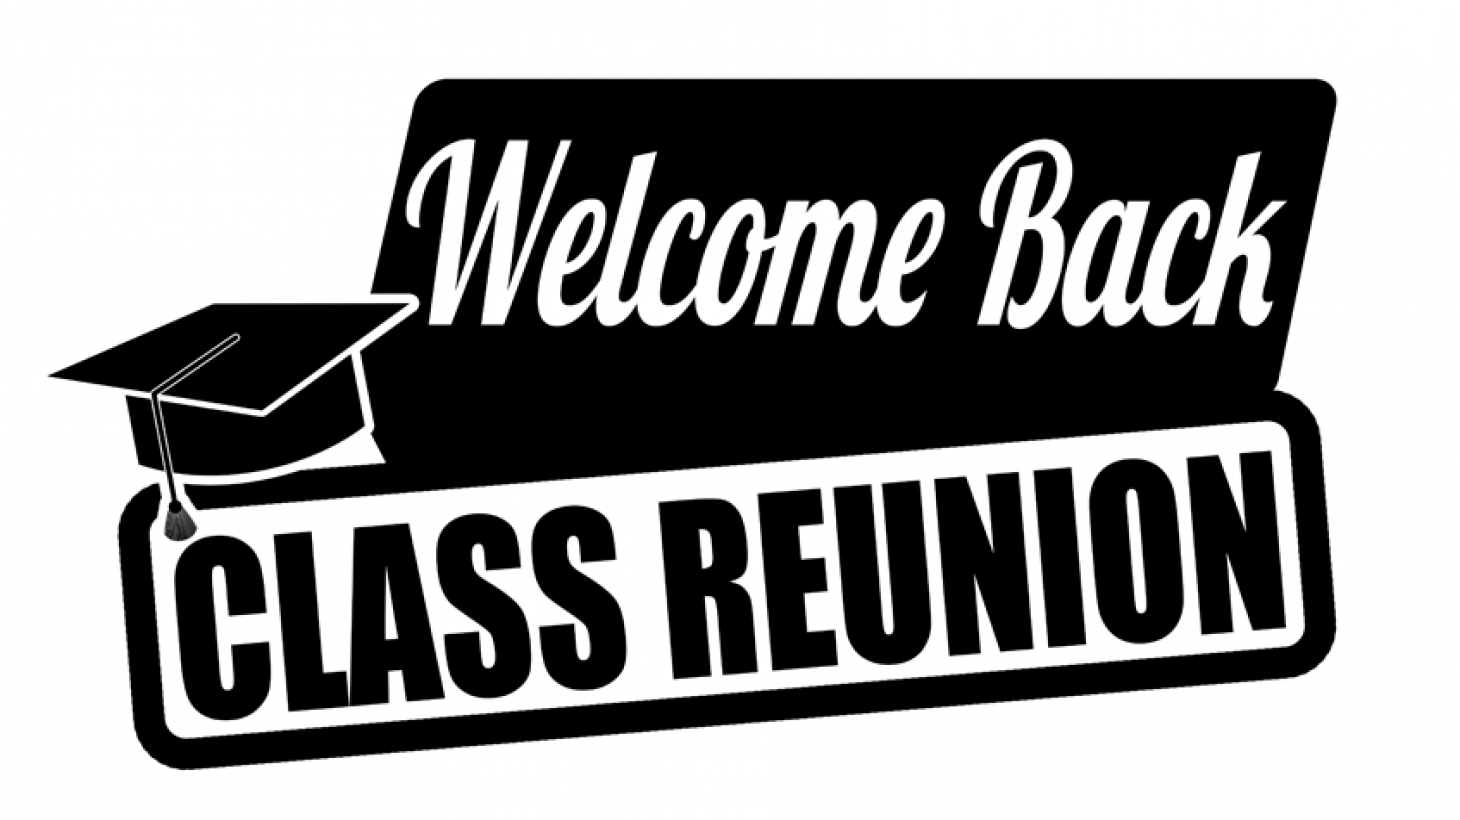 Welcome Back Class Reunion